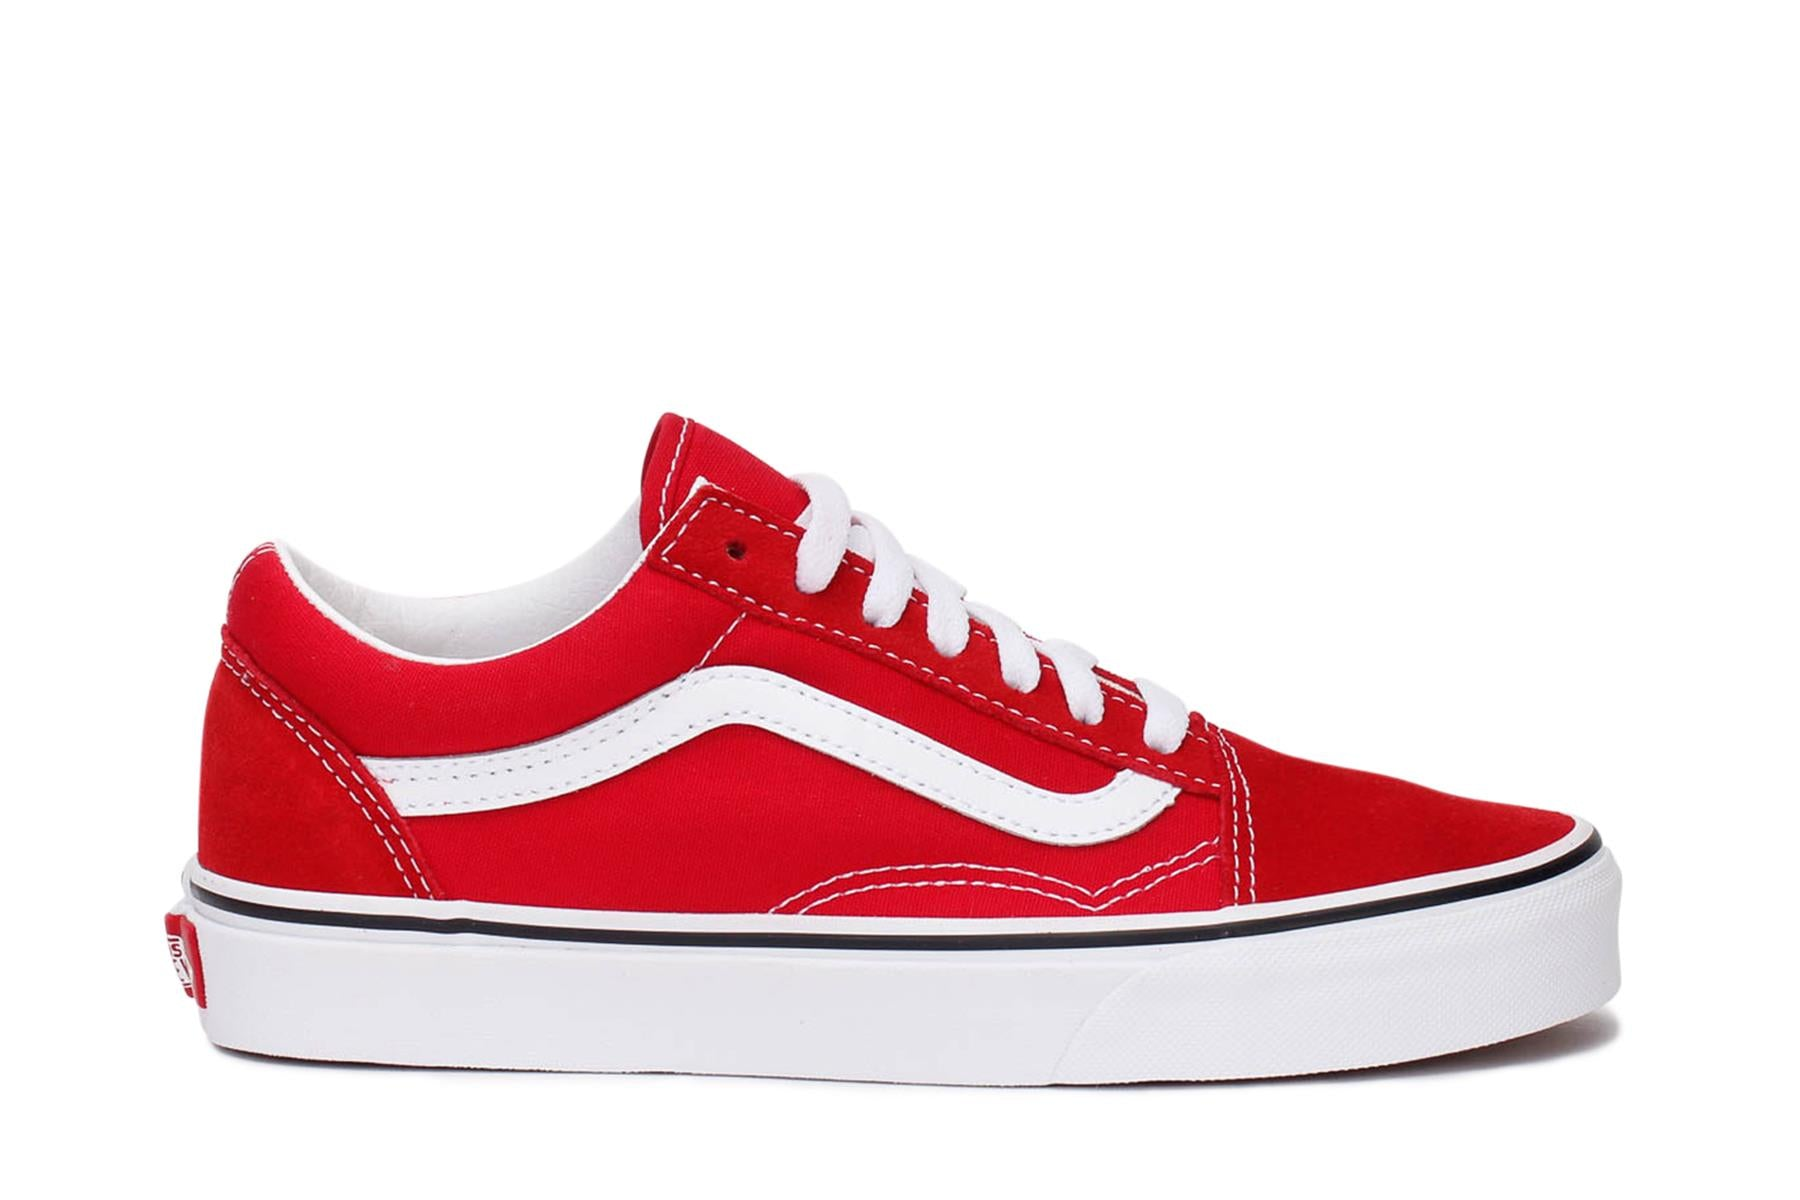 vans-mens-old-skool-sneakers-racing-red-true-white-vn0a4bv5jv6-main